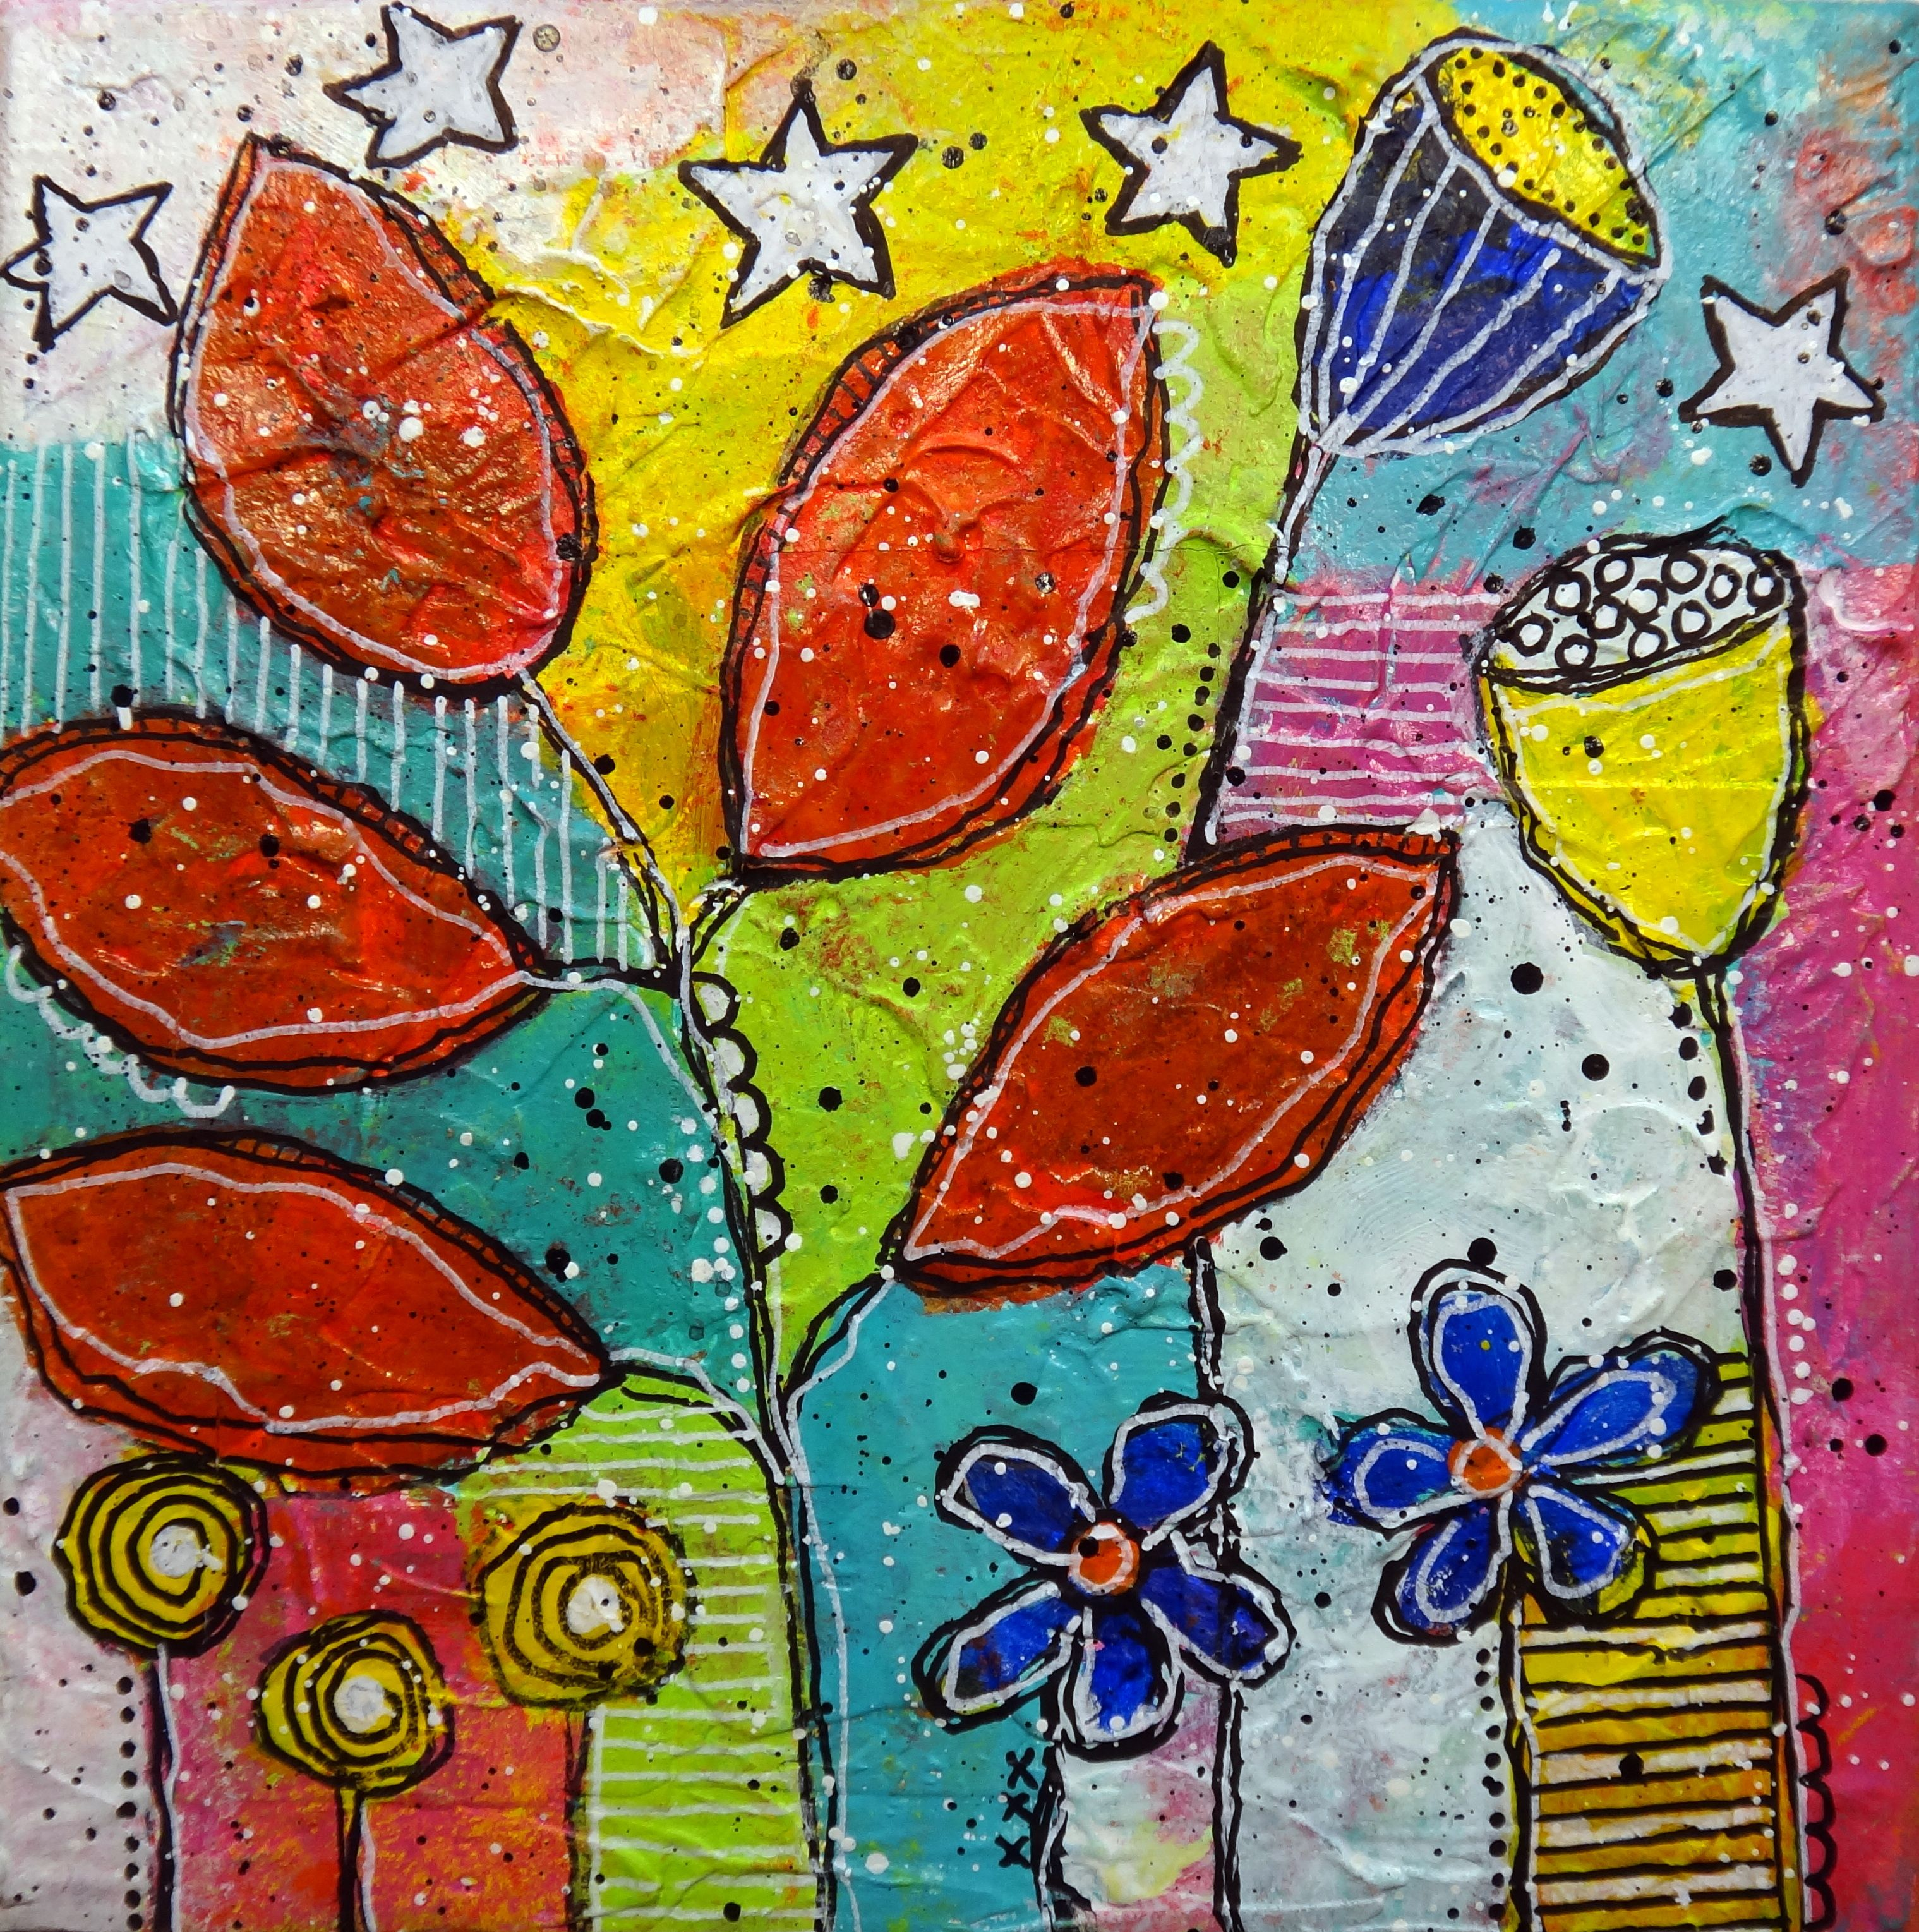 Acrylics Poster Paint Pens Mixed Media Intuitive Painting